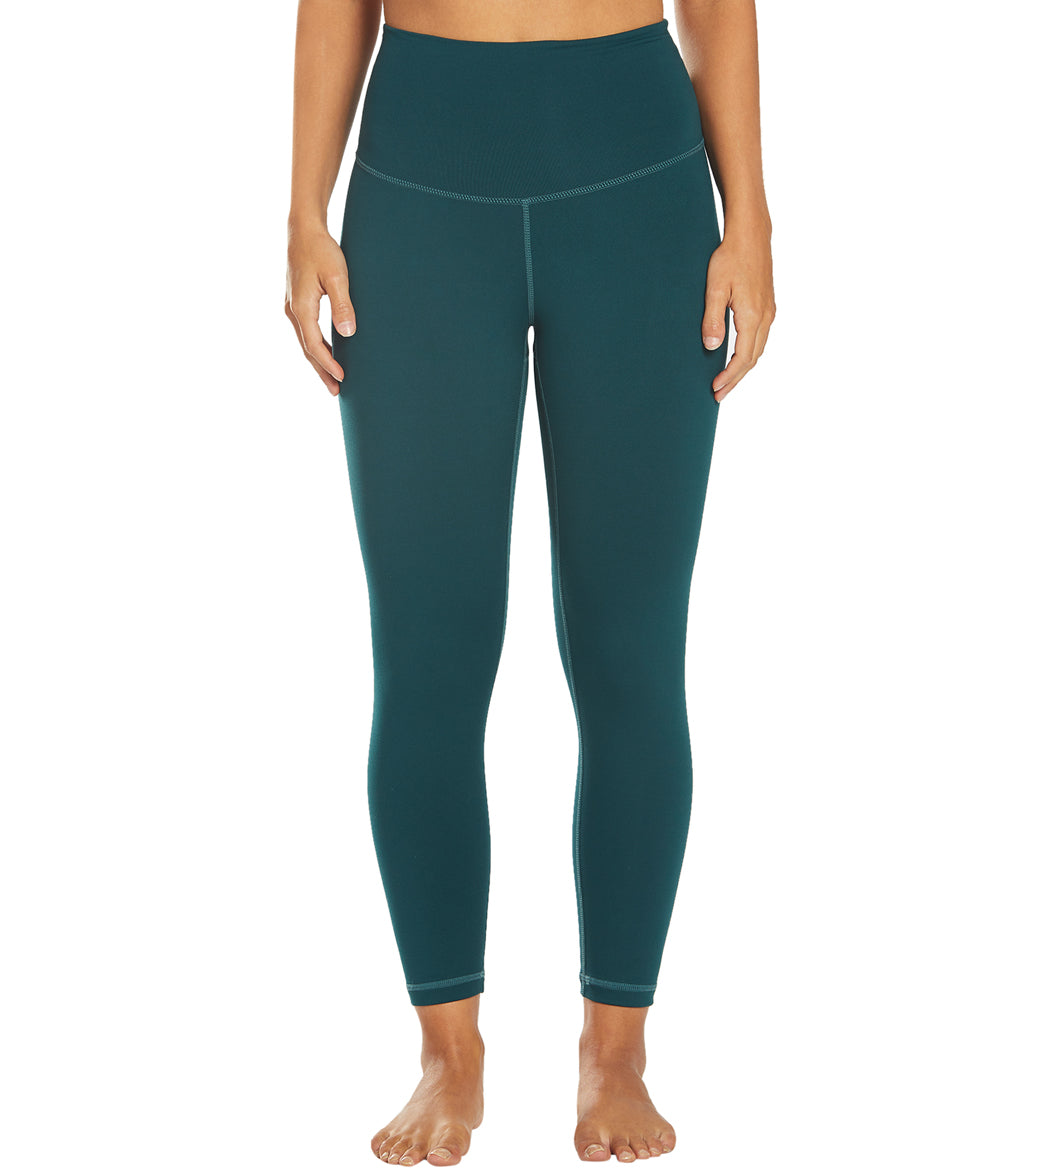 DYI Signature Jersey Moss High Waisted 7/8 Yoga Leggings - Forest Spandex